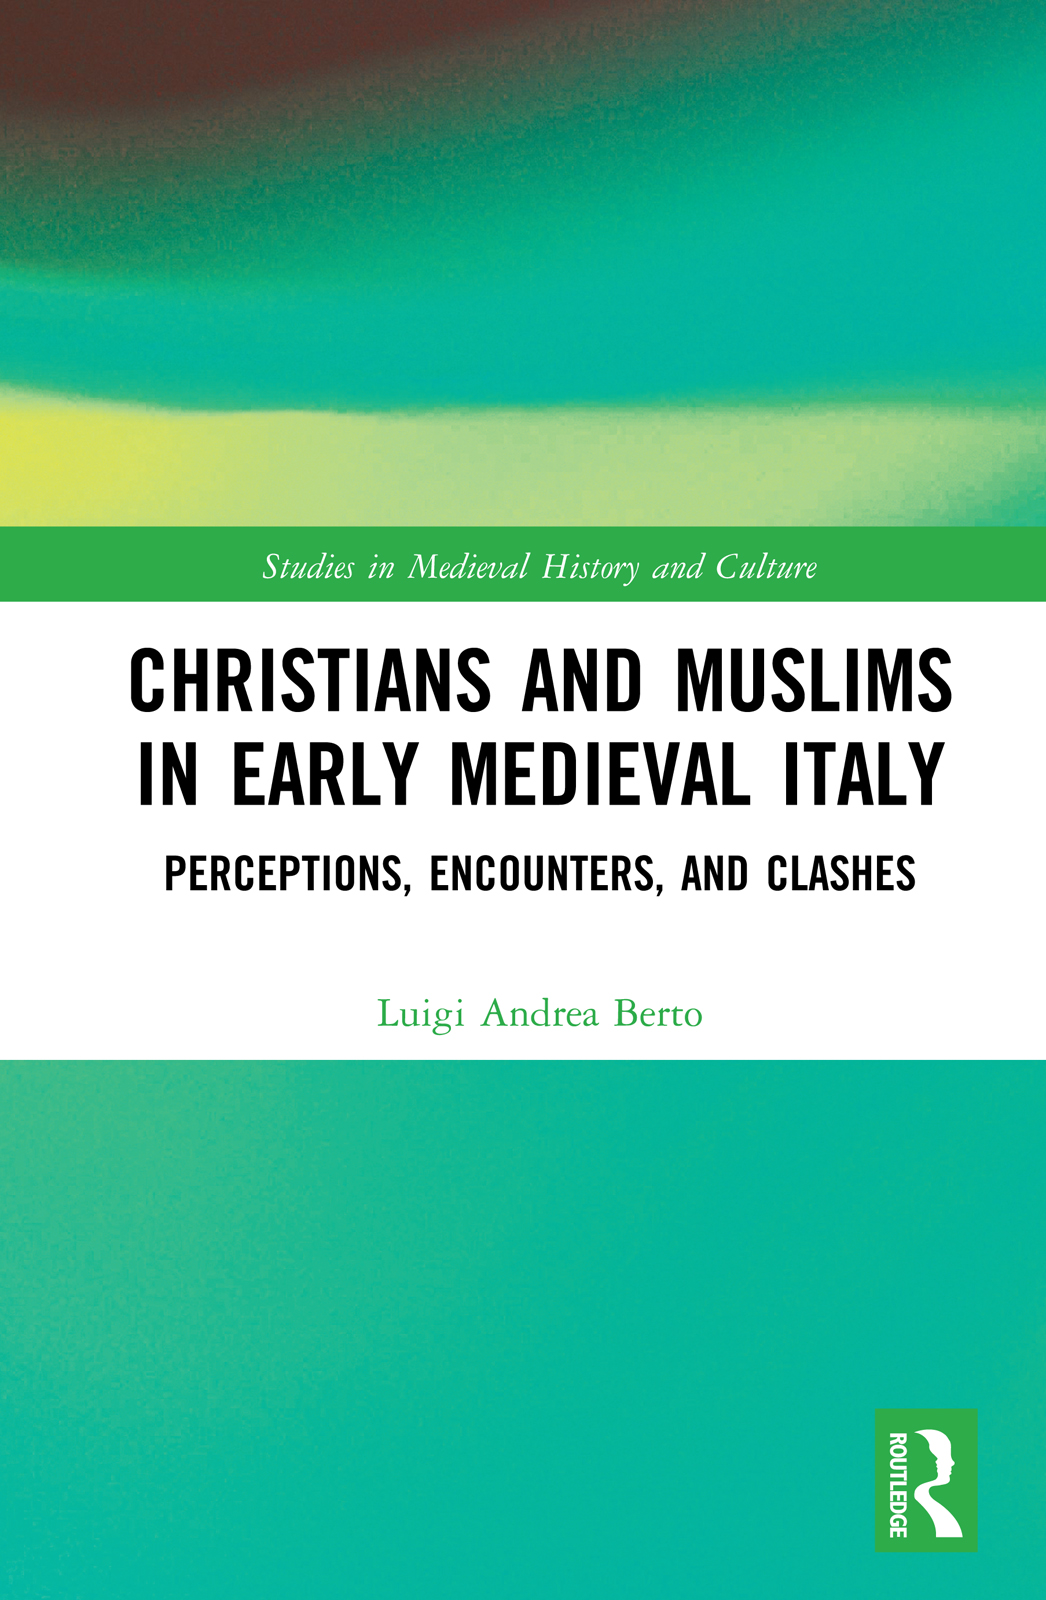 Christians and Muslims in Early Medieval Italy: Perceptions, Encounters, and Clashes book cover